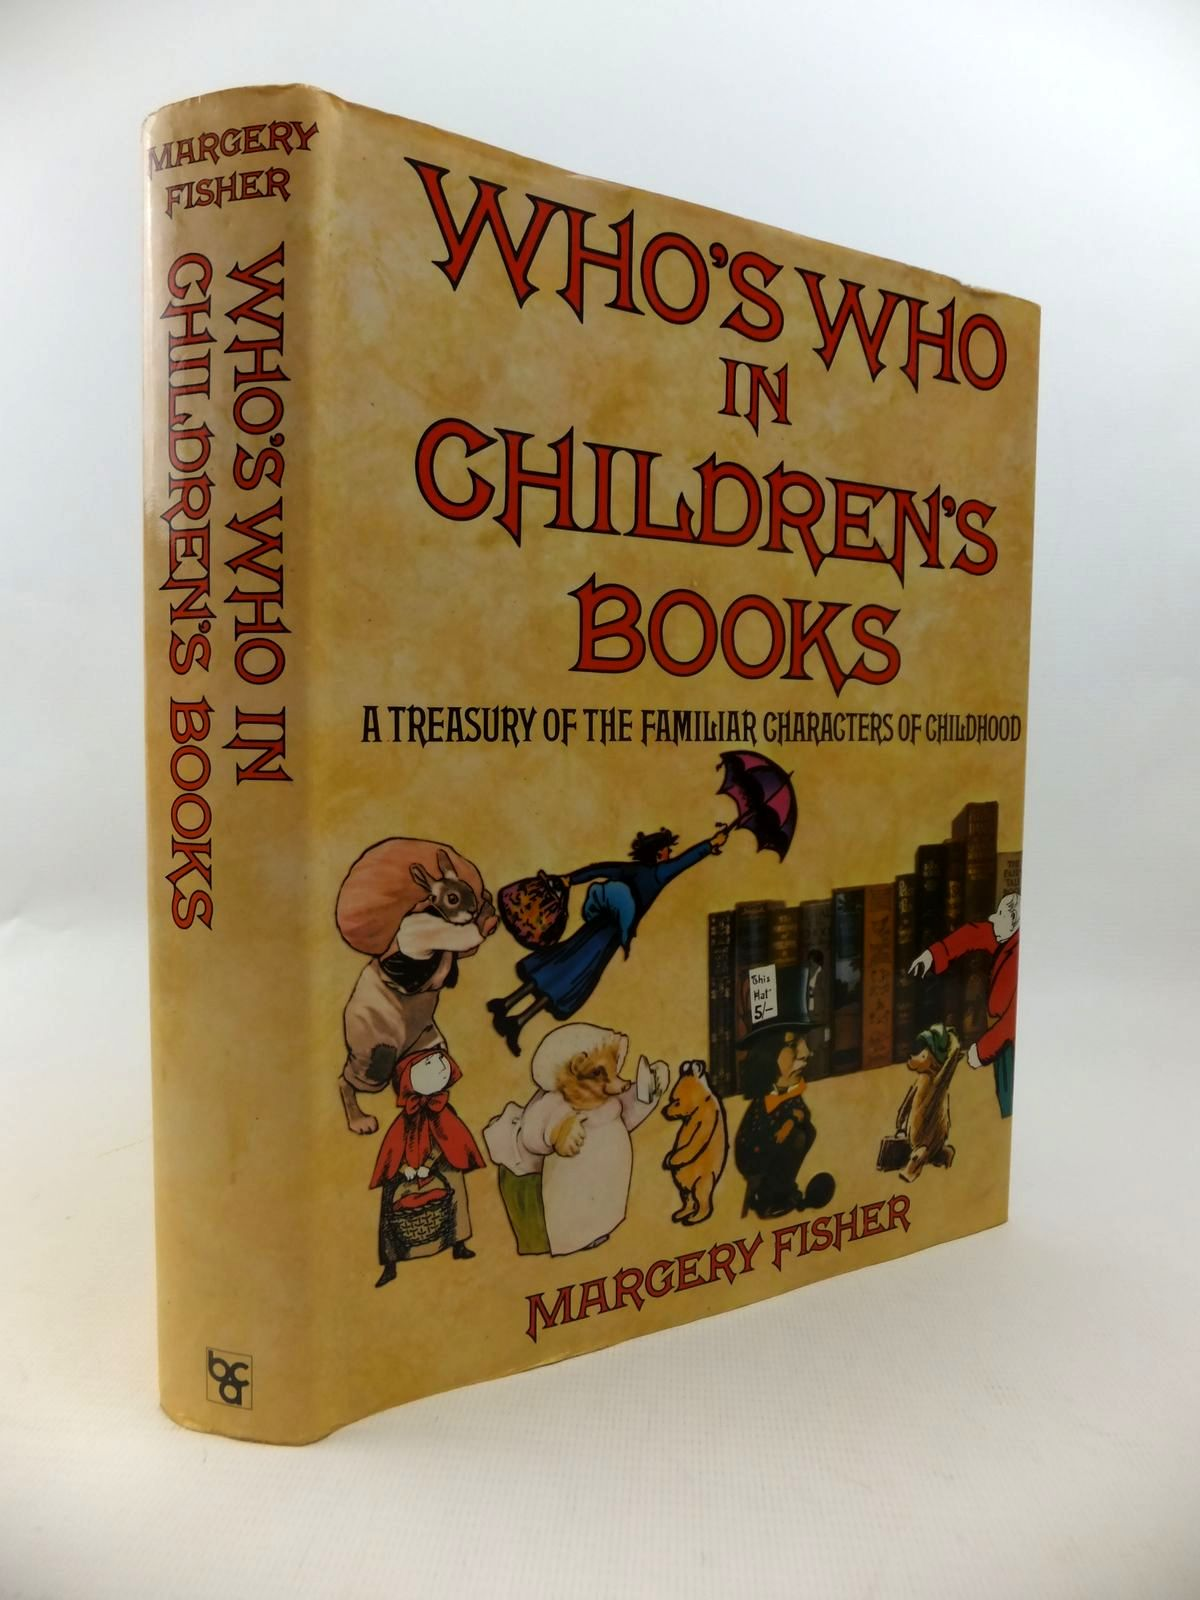 Photo of WHO'S WHO IN CHILDREN'S BOOKS A TREASURY OF THE FAMILIAR CHARACTERS OF CHILDHOOD written by Fisher, Margery published by Weidenfeld and Nicolson (STOCK CODE: 1812721)  for sale by Stella & Rose's Books